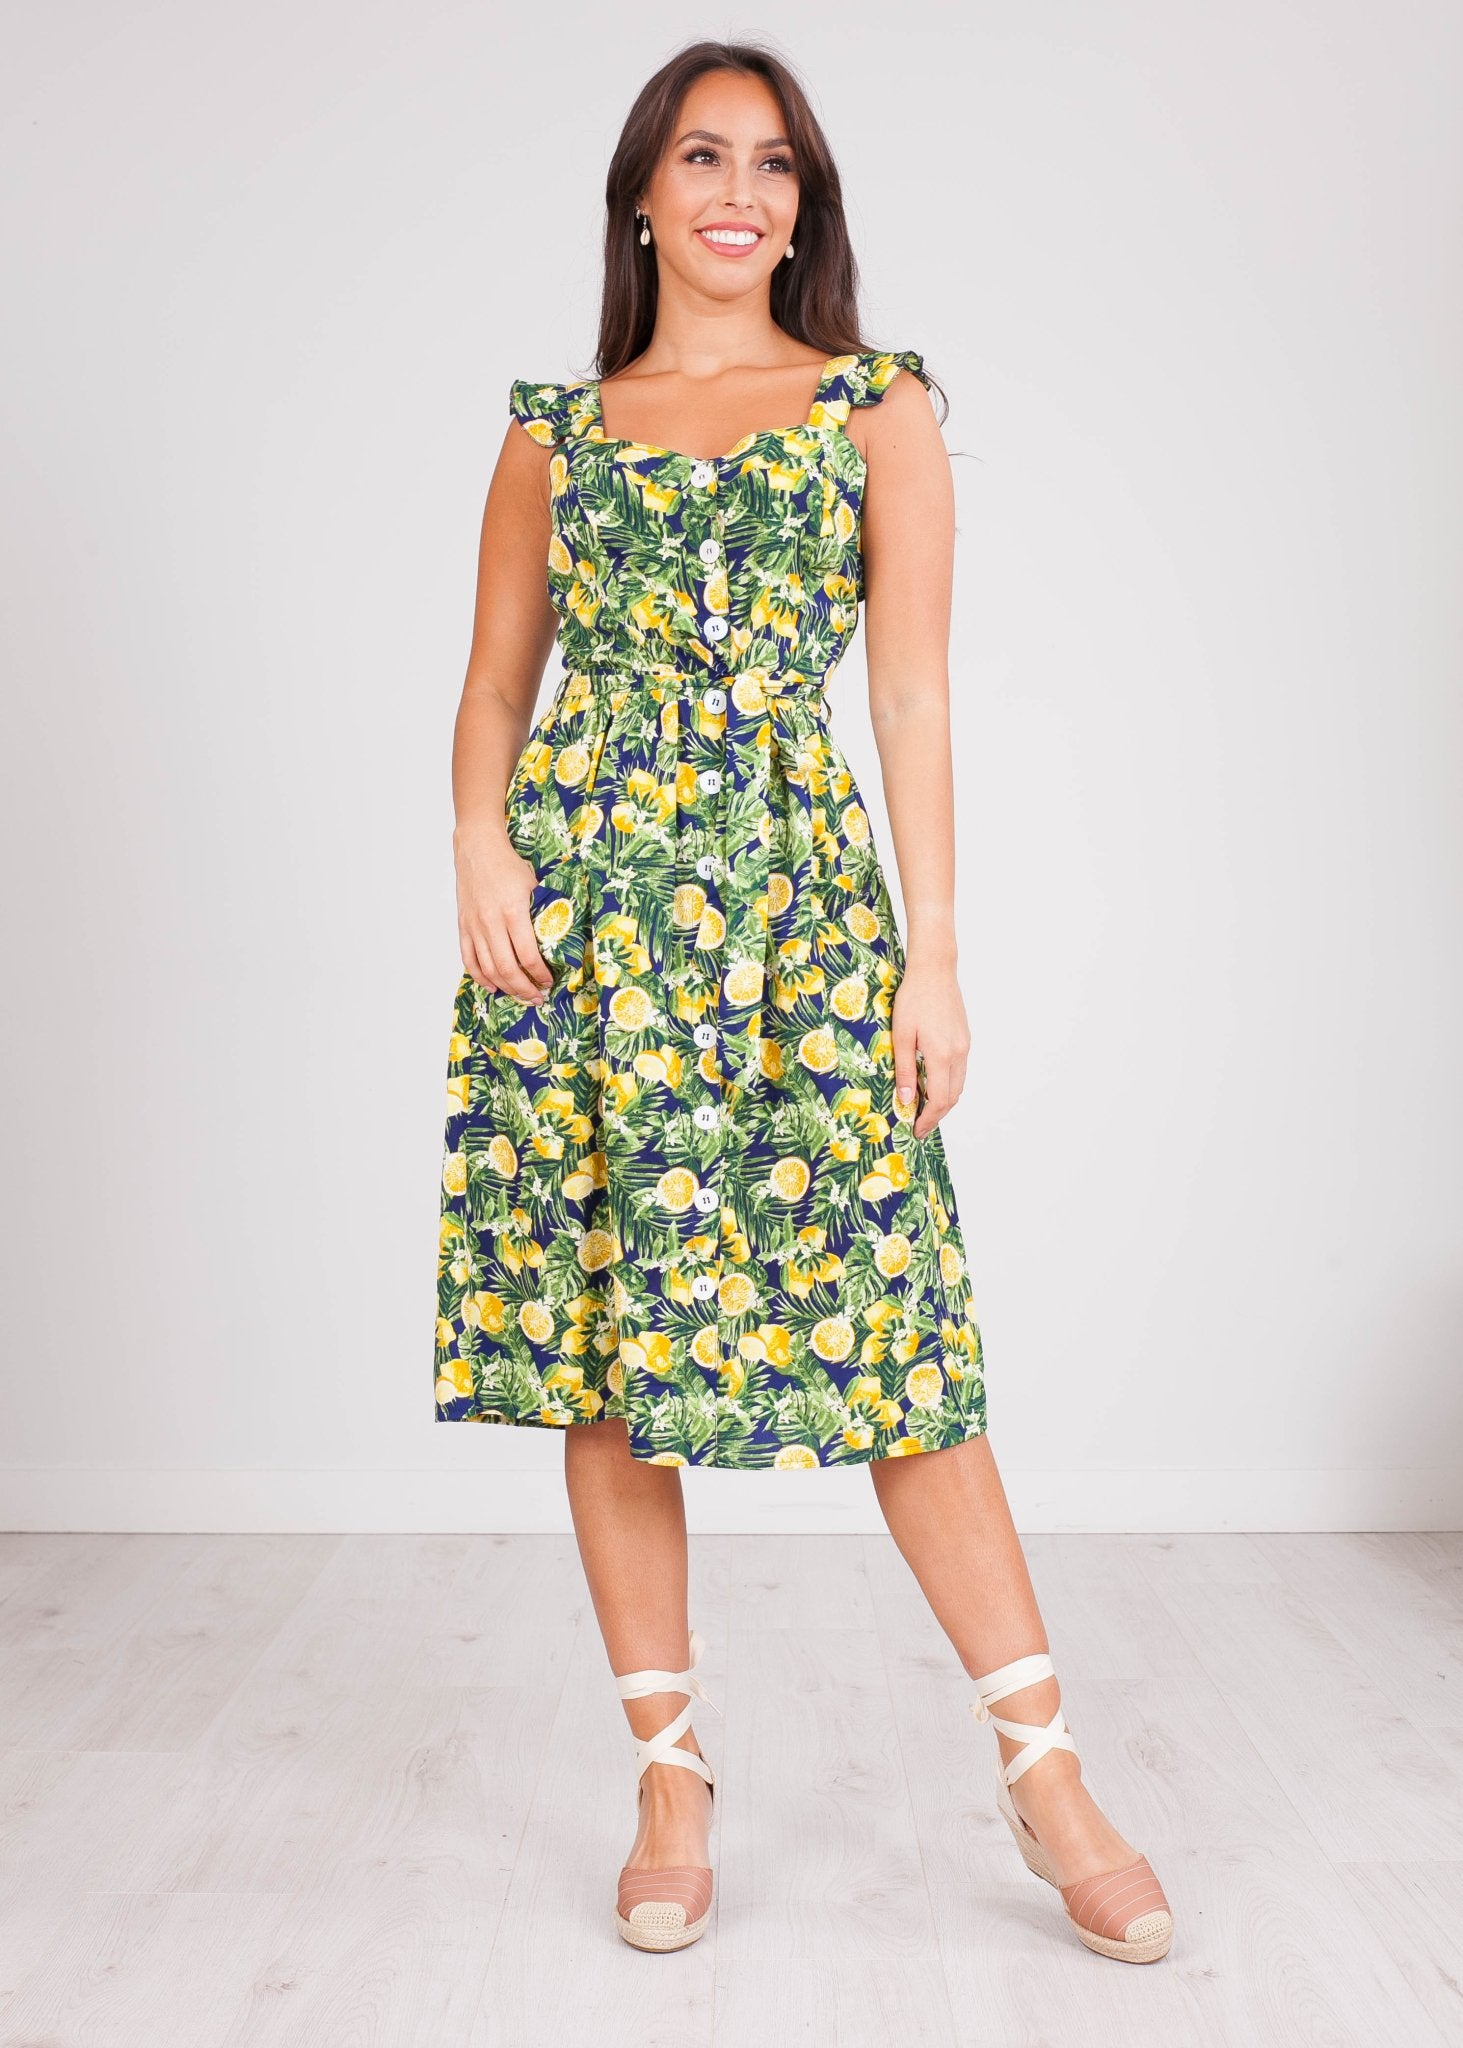 Nora Lemon Midi Dress - The Walk in Wardrobe